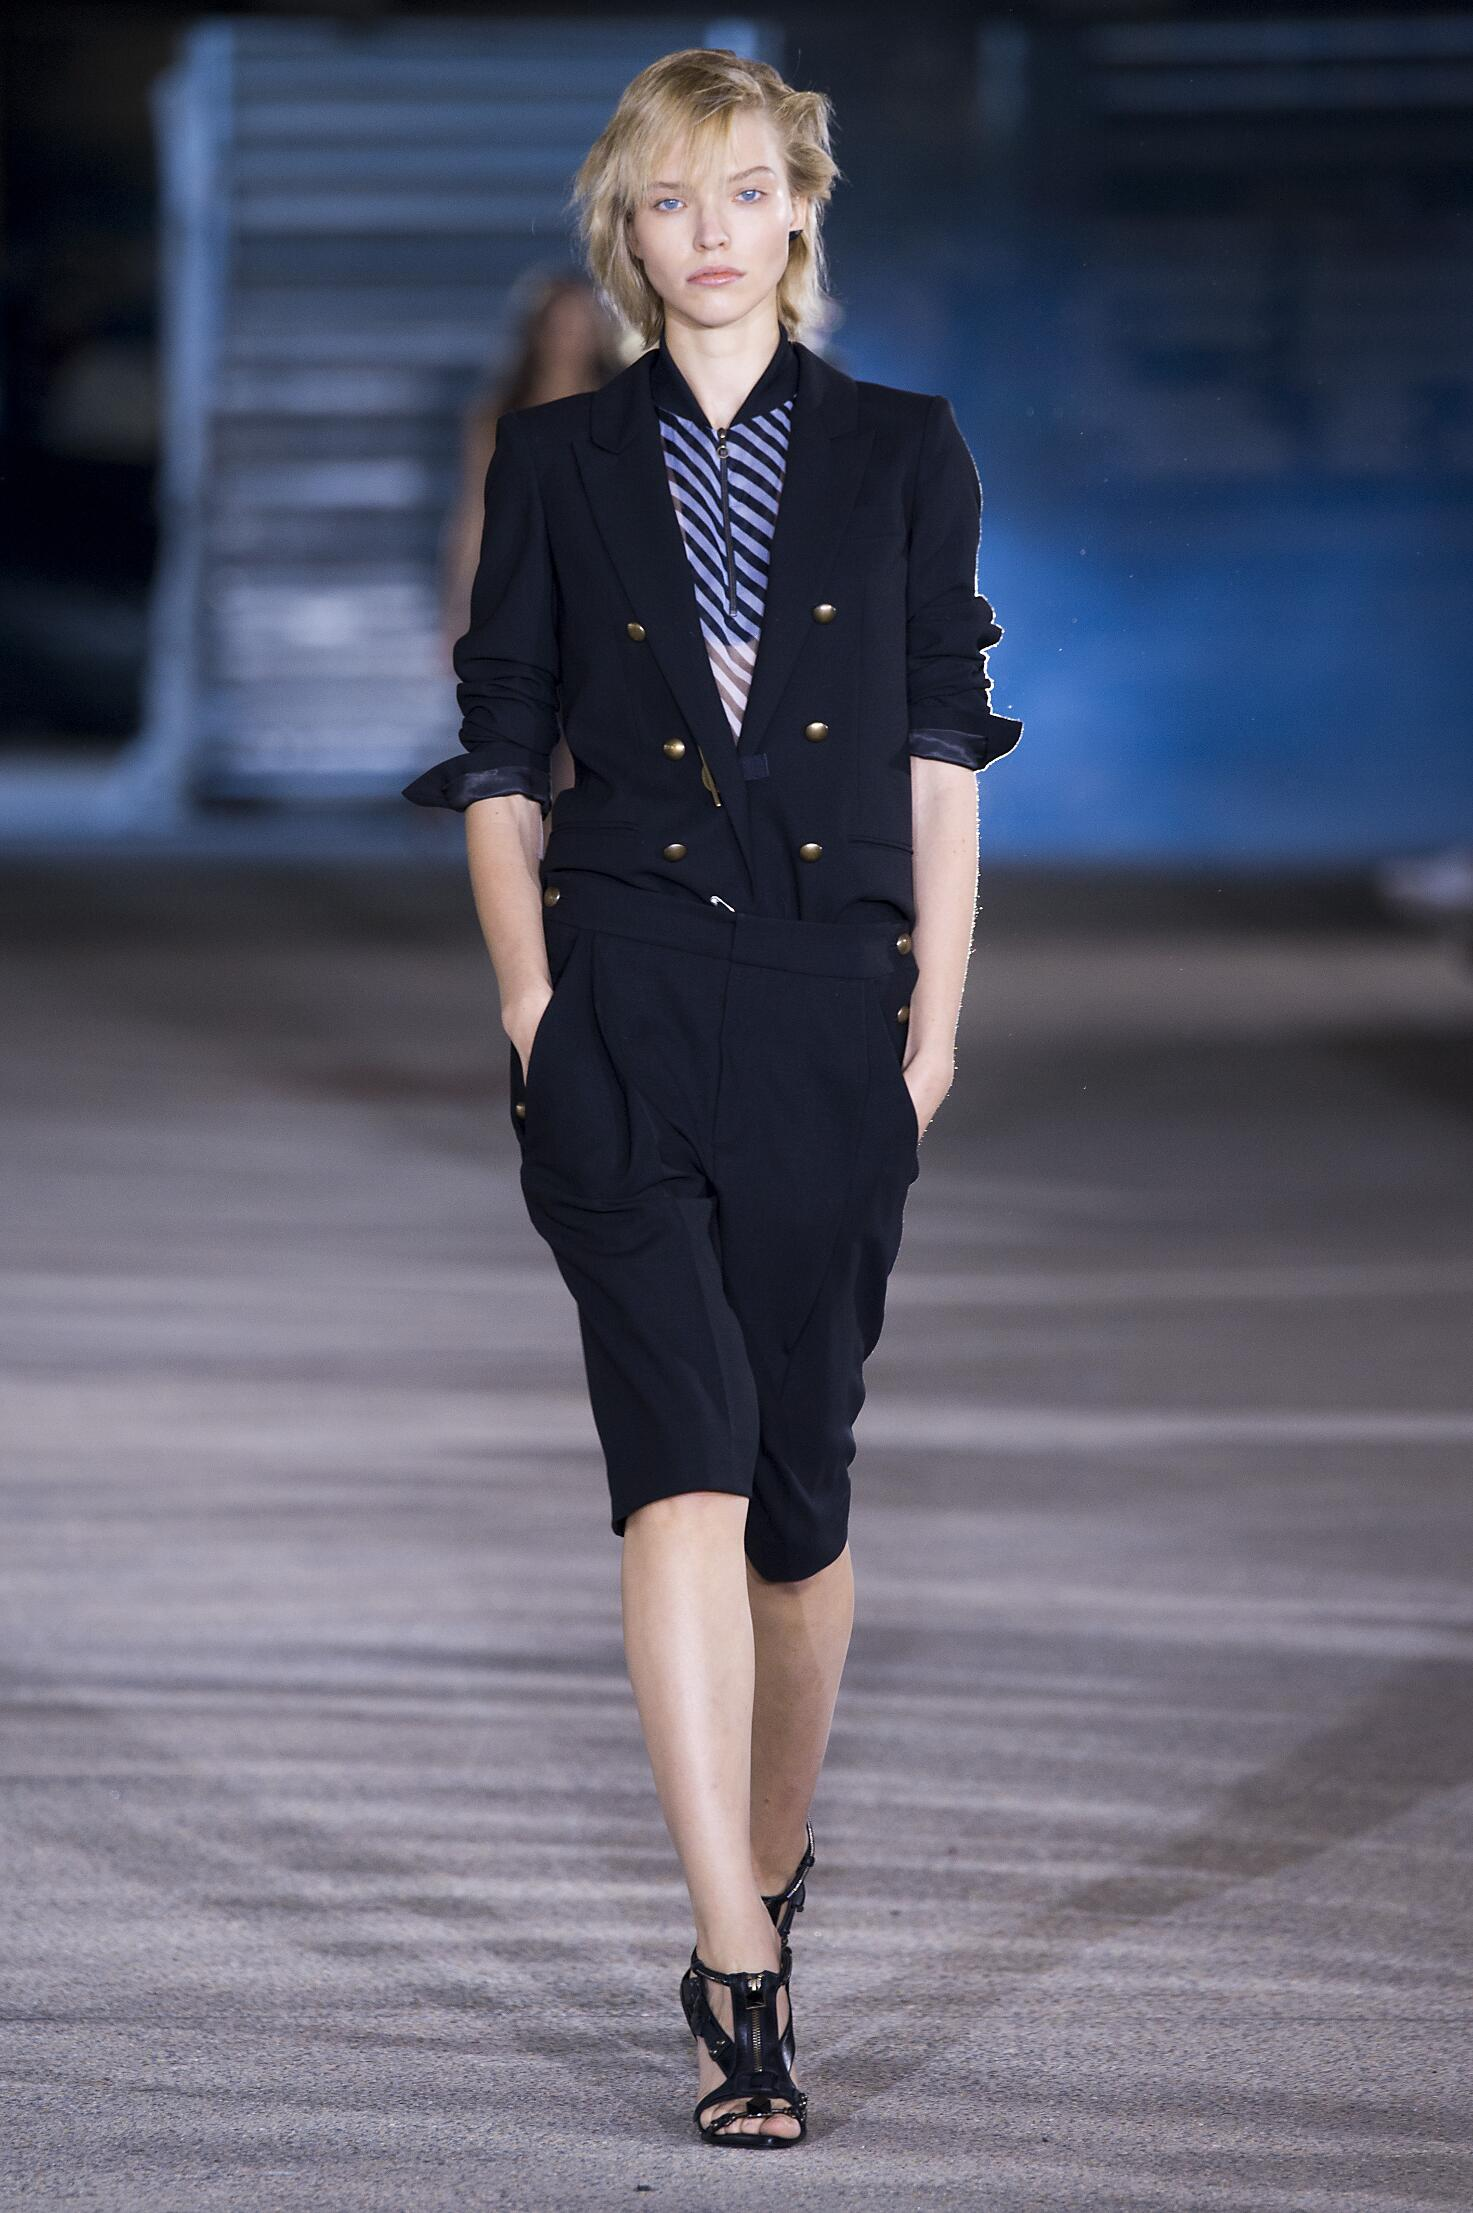 Anthony Vaccarello Spring 2015 Catwalk